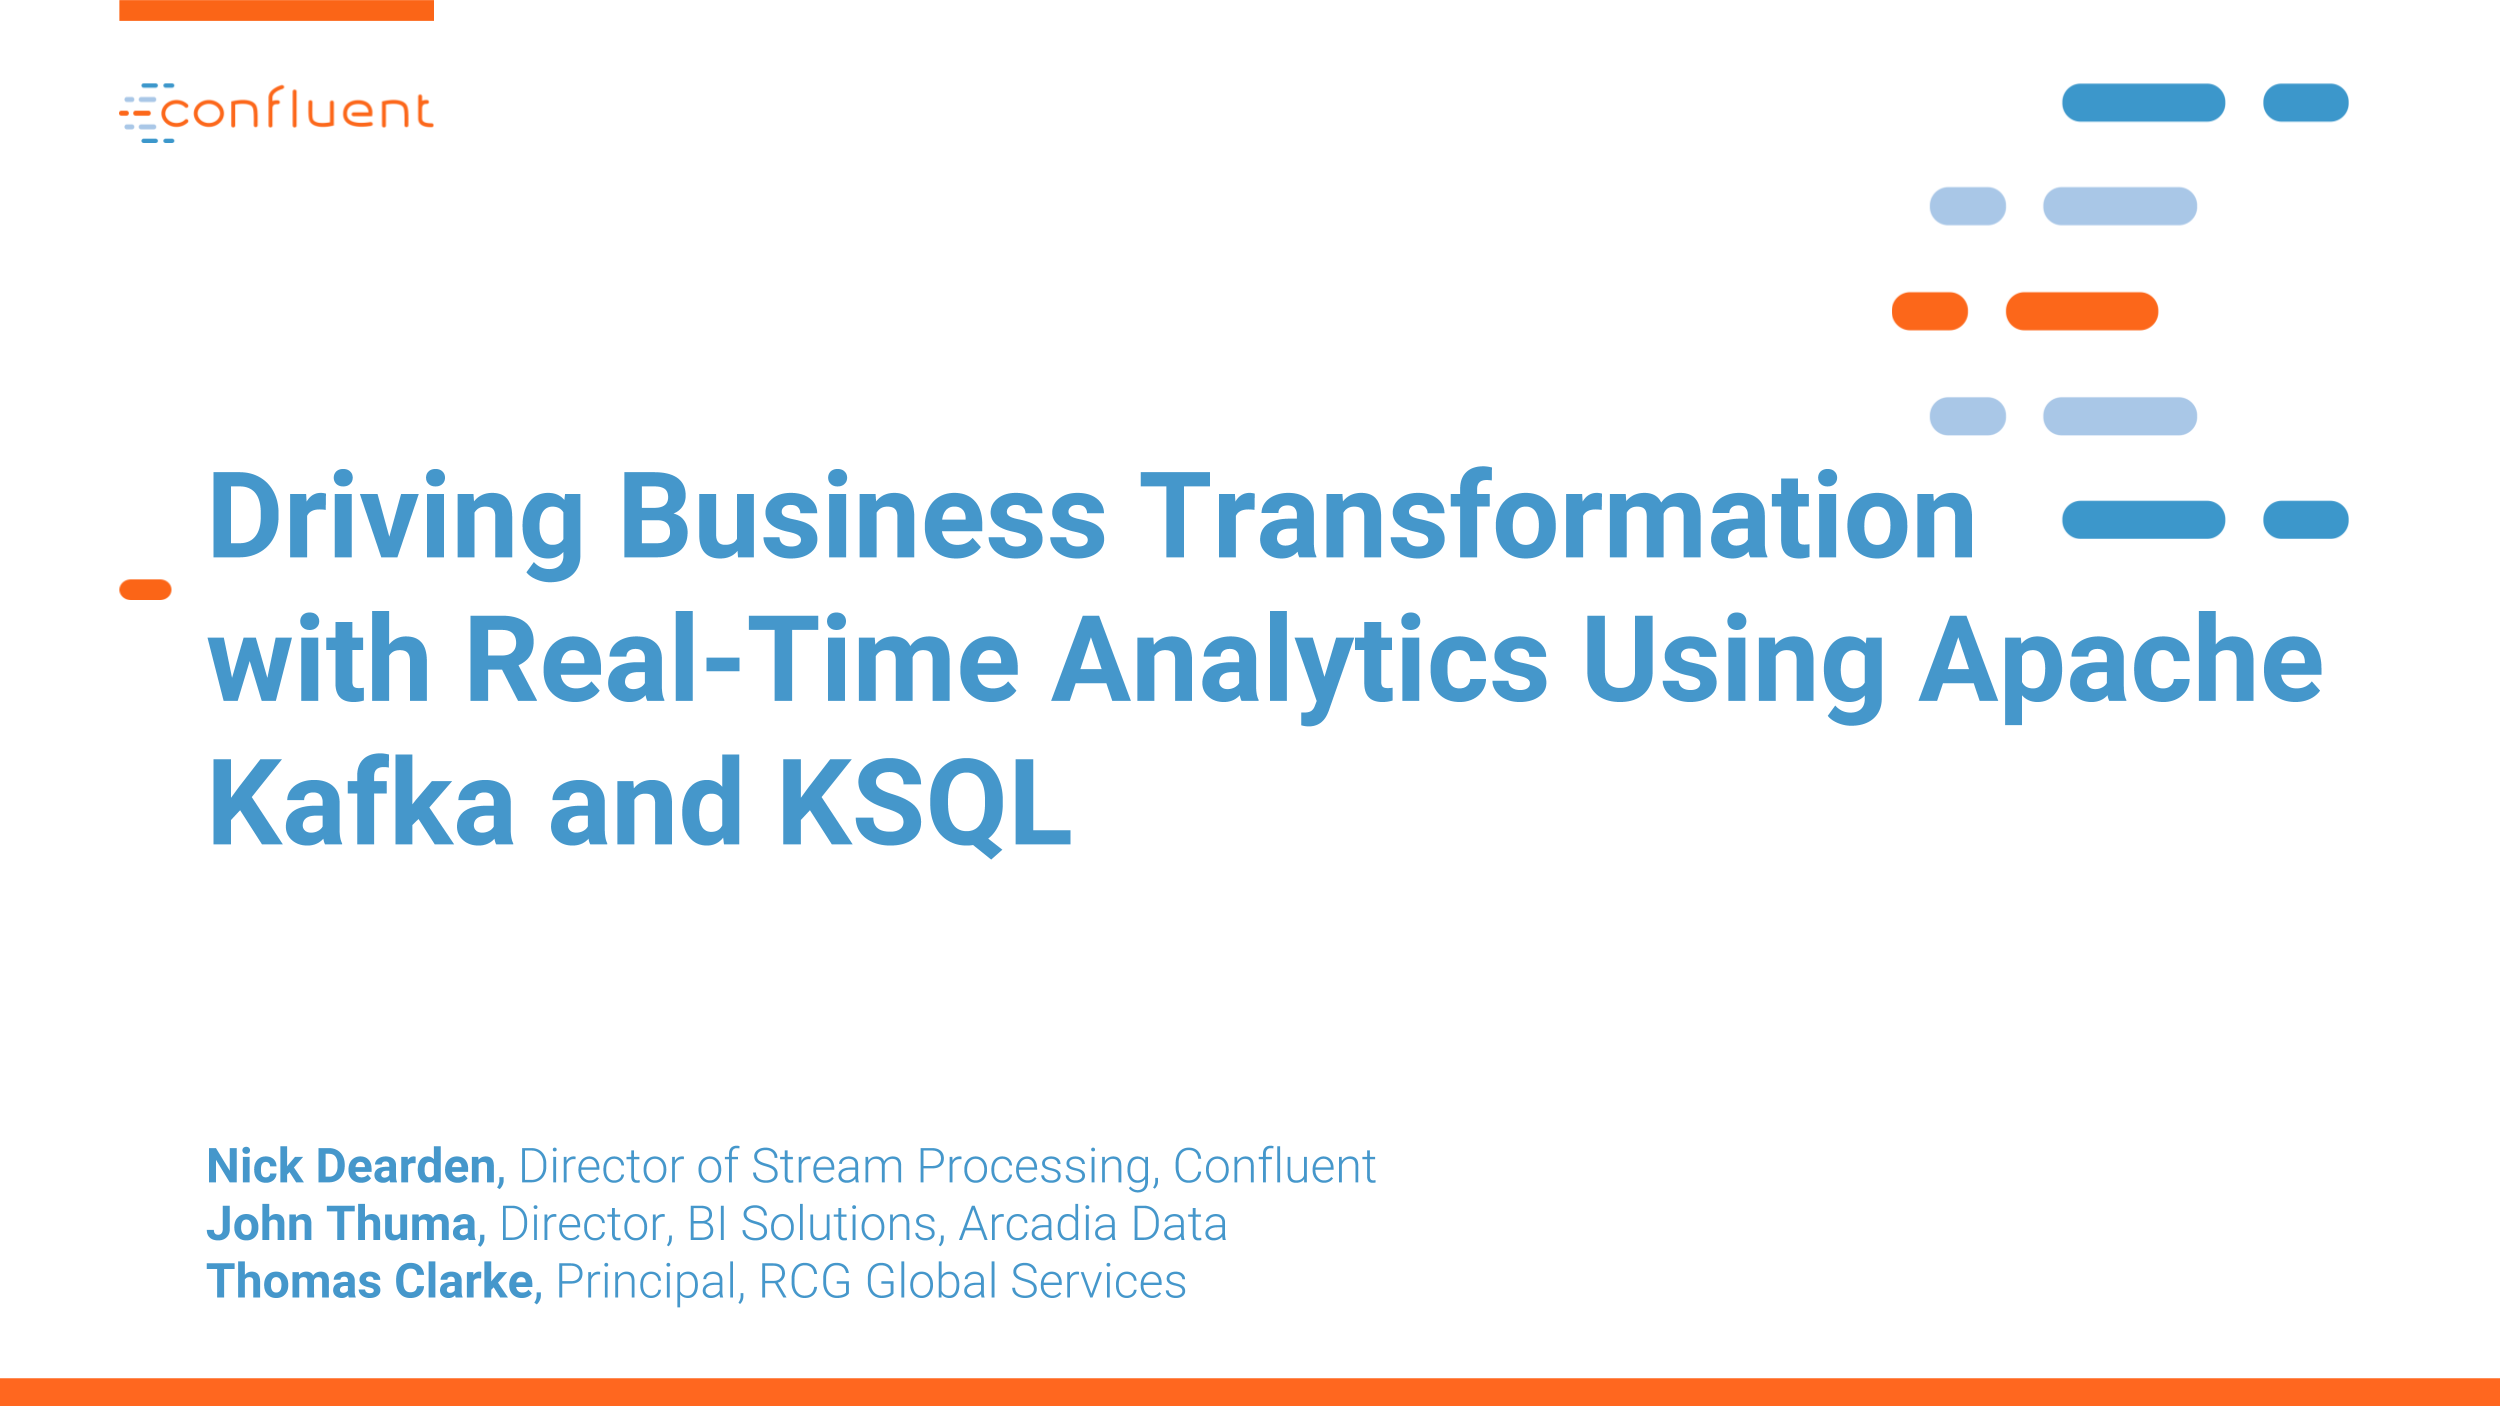 Driving Business Transformation with Real-Time Analytics Using Apache Kafka and KSQL